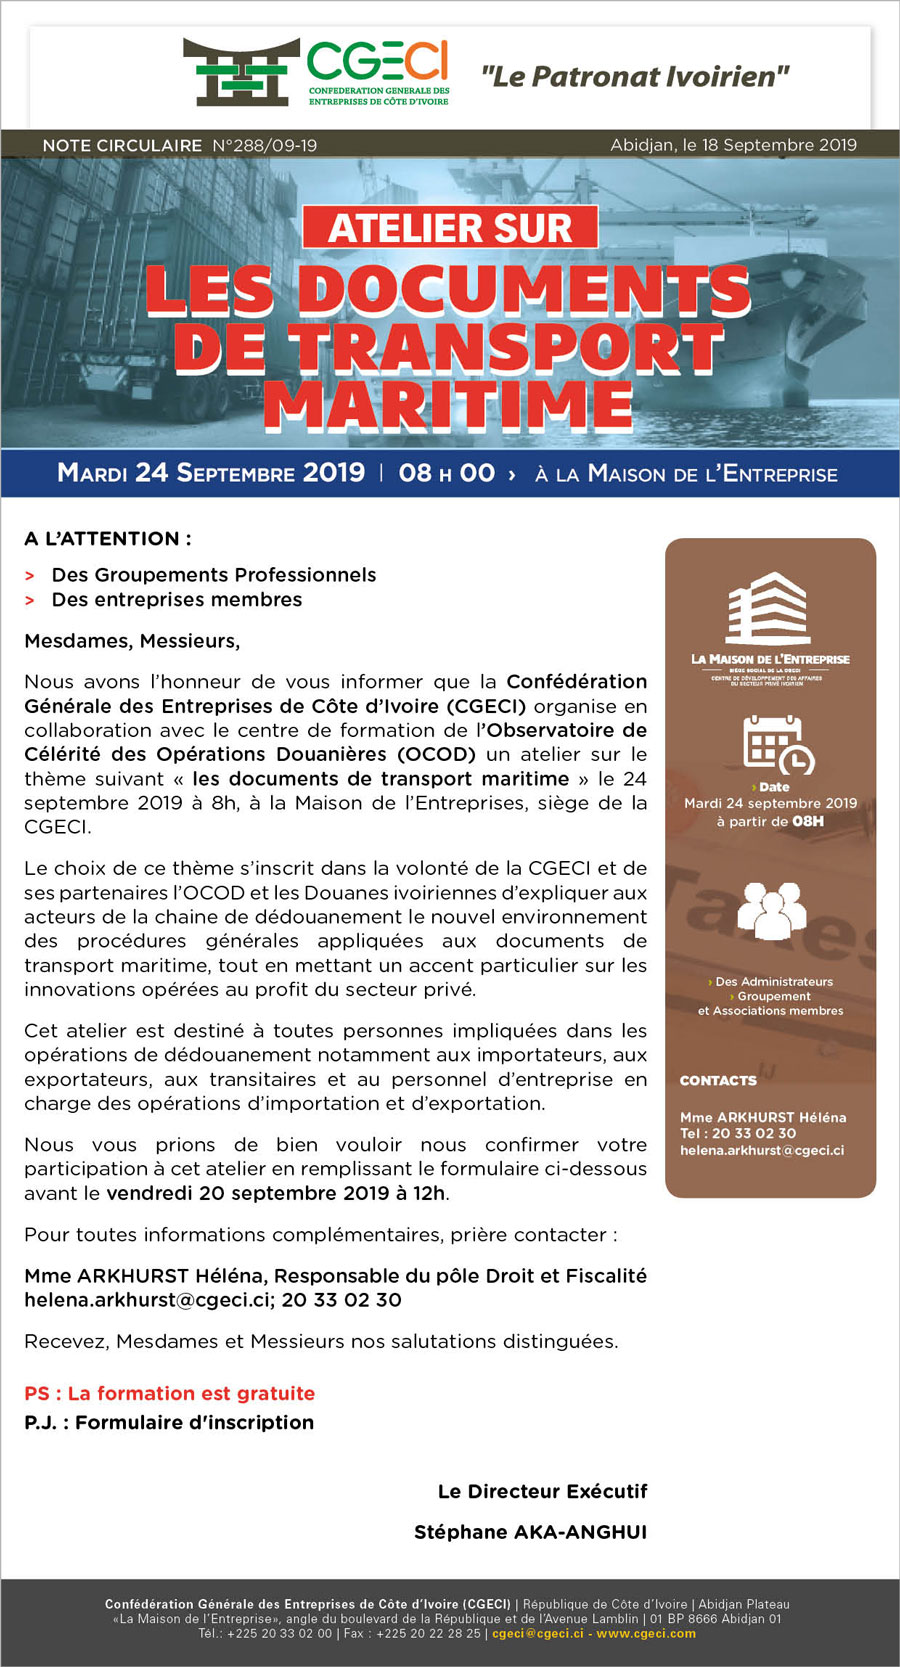 les documents de transport maritime